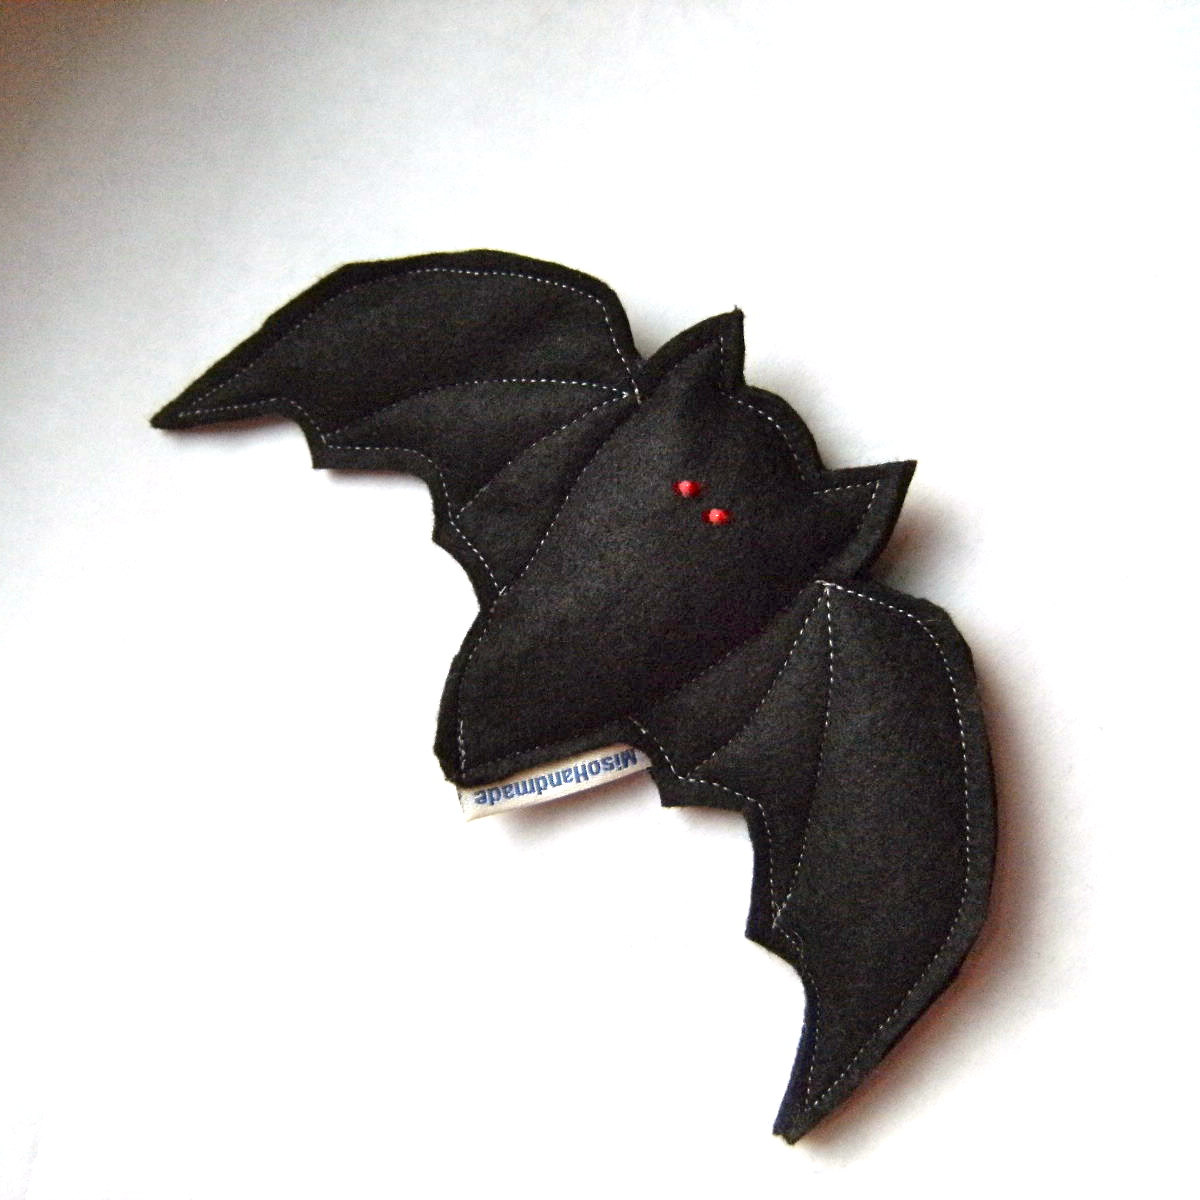 Tricks with no treats isn't a fair shake. Cats will go batty for a catnip-filled Scaredy Bat toy ($8), and they may even forgive you for sneaking up on them in that zombie mask.